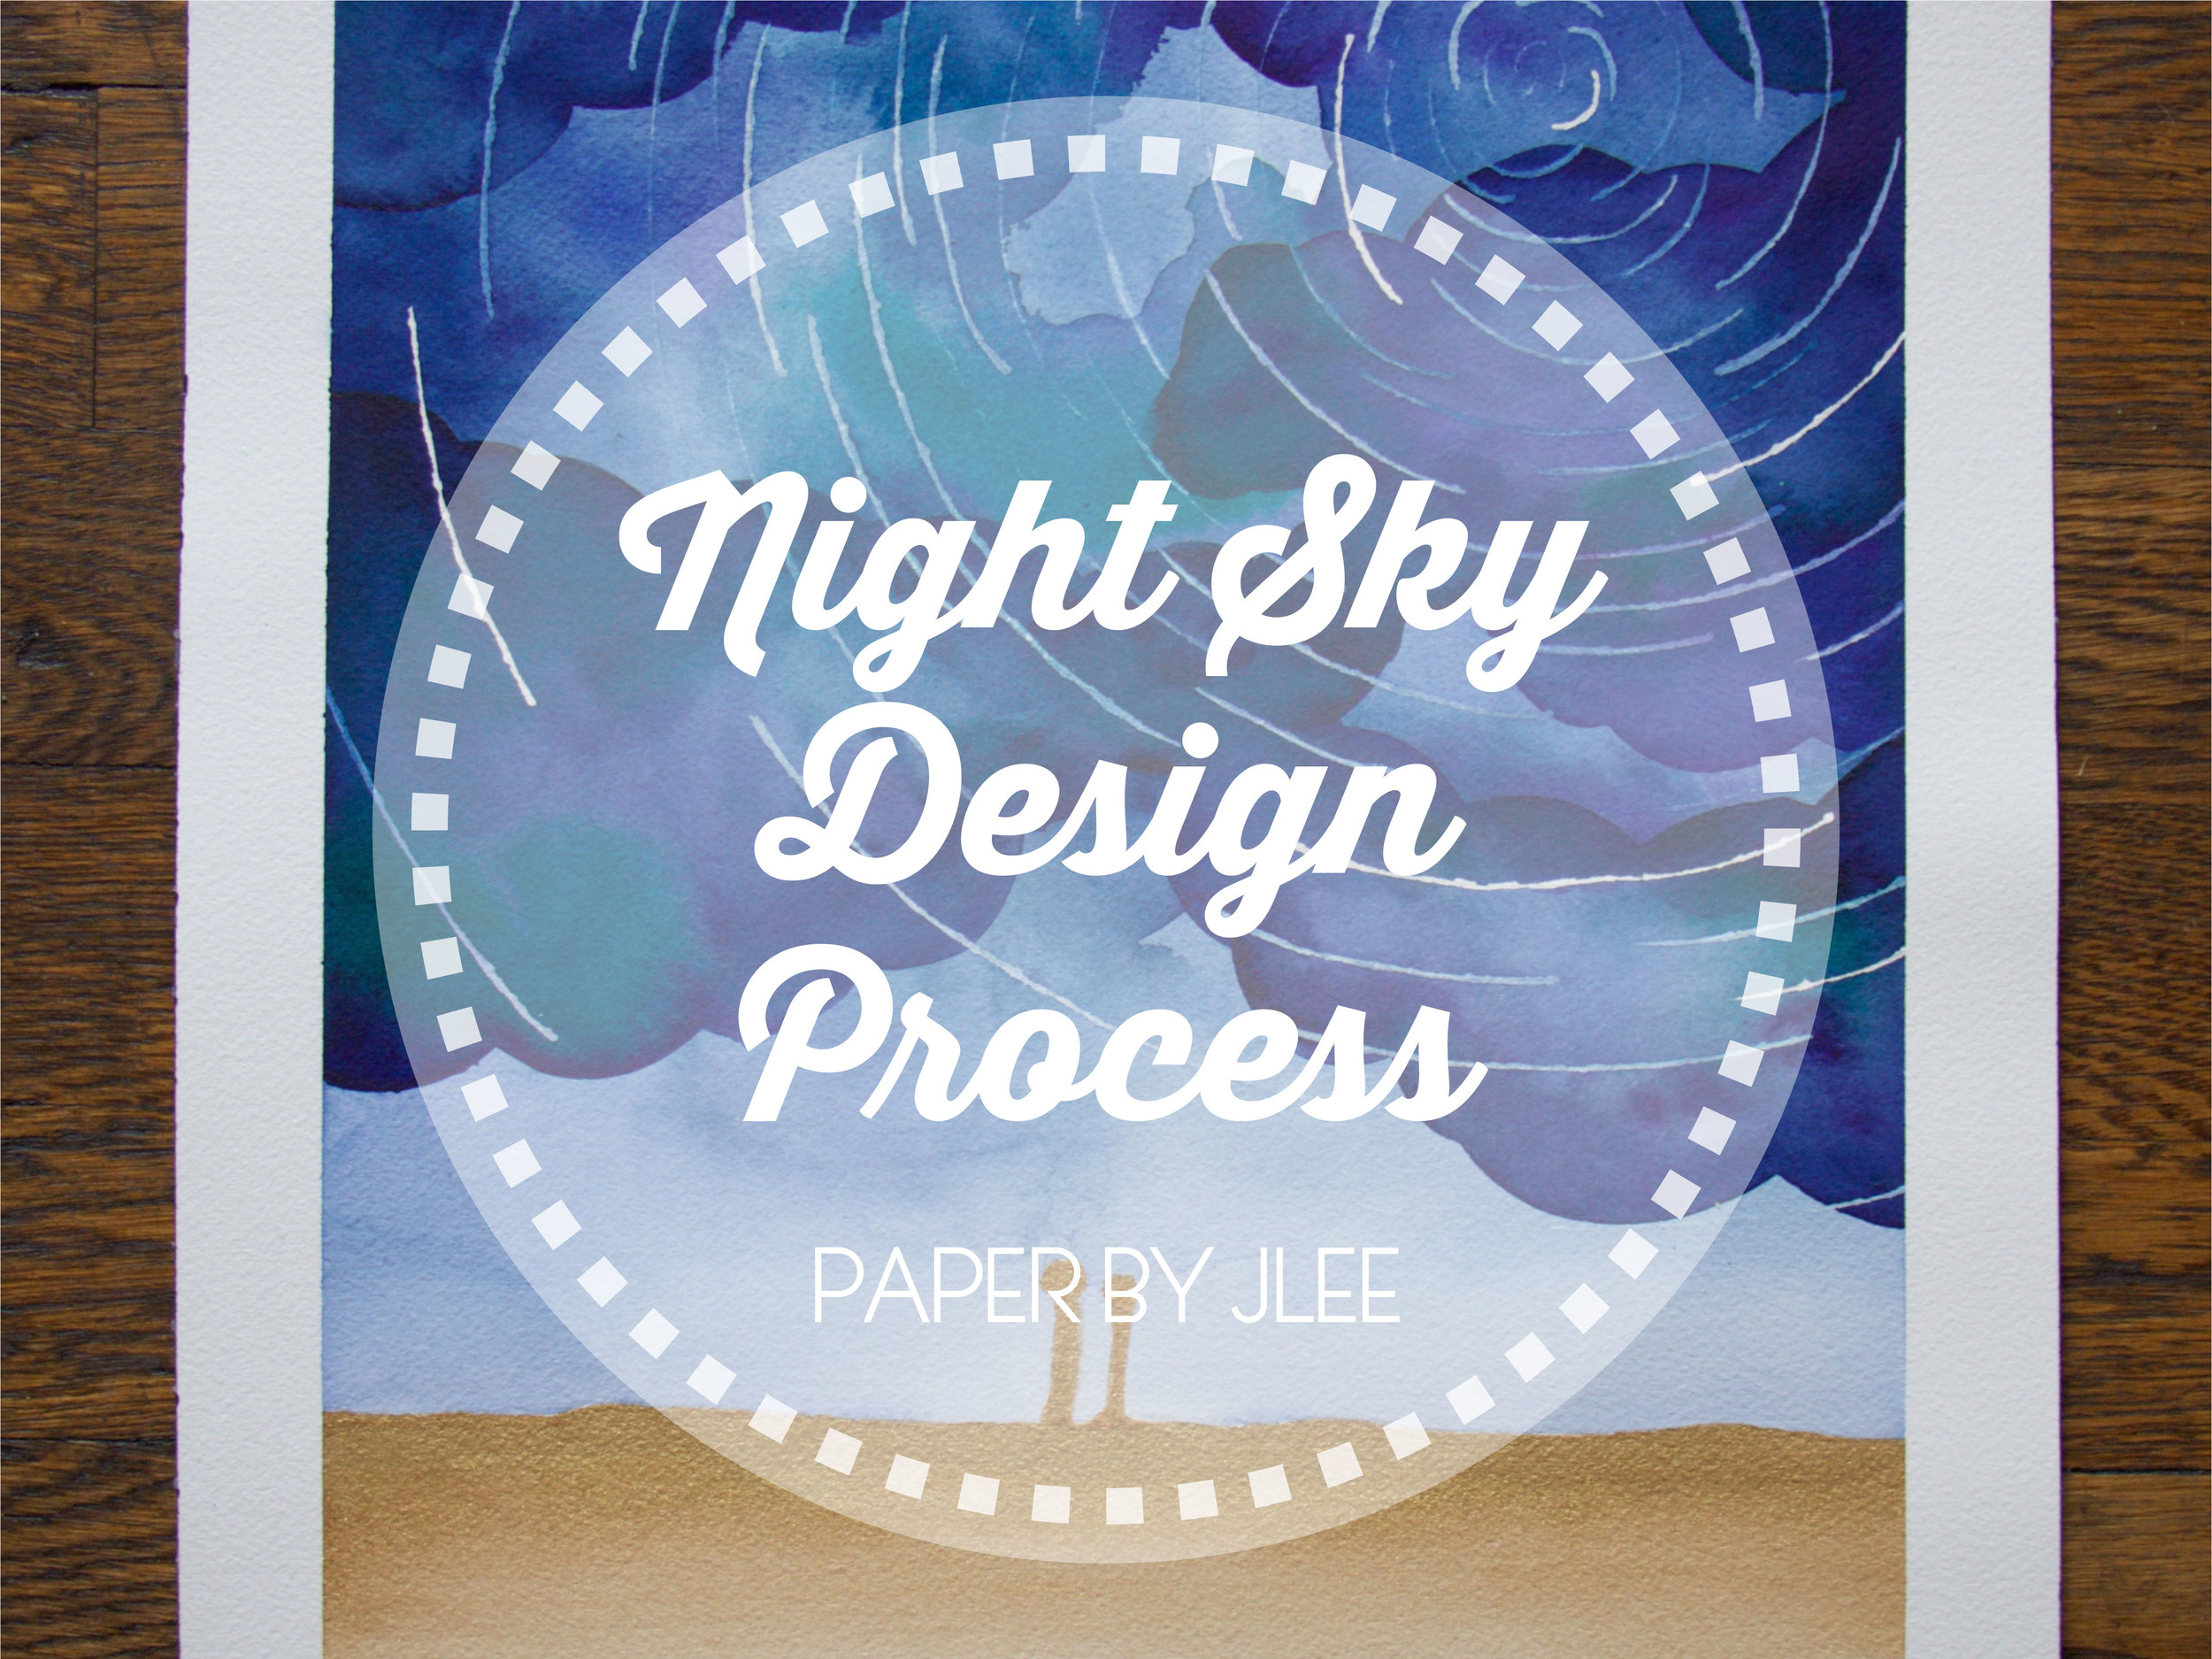 Paper by JLee: Night Sky Design Process